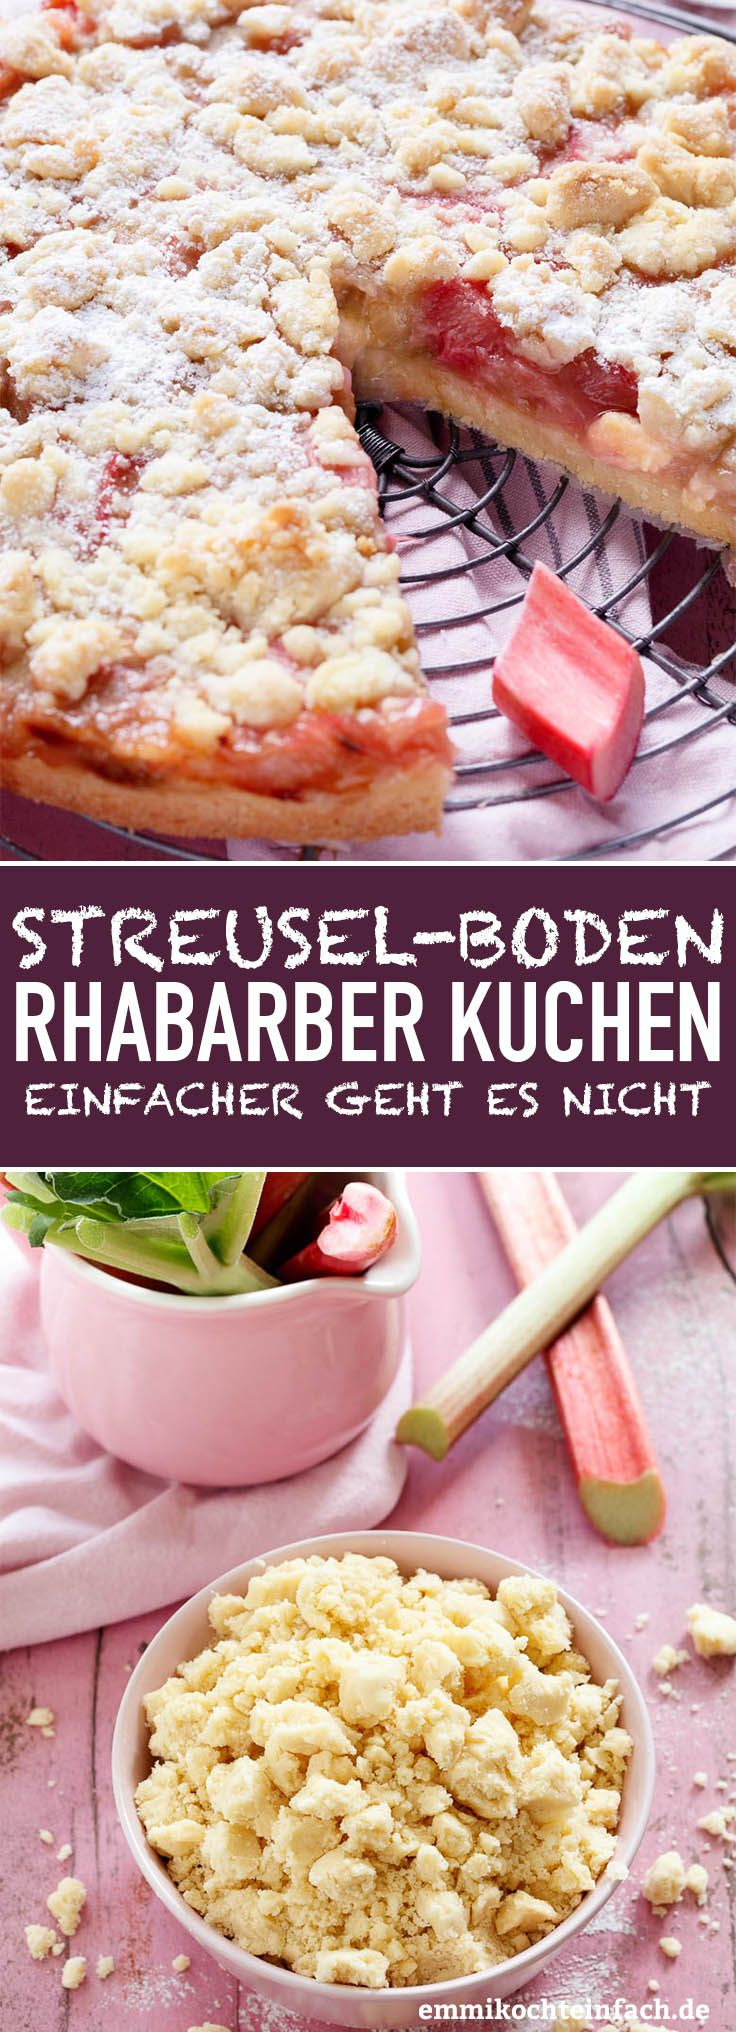 Photo of Streuselboden cake with rhubarb – easy to cook